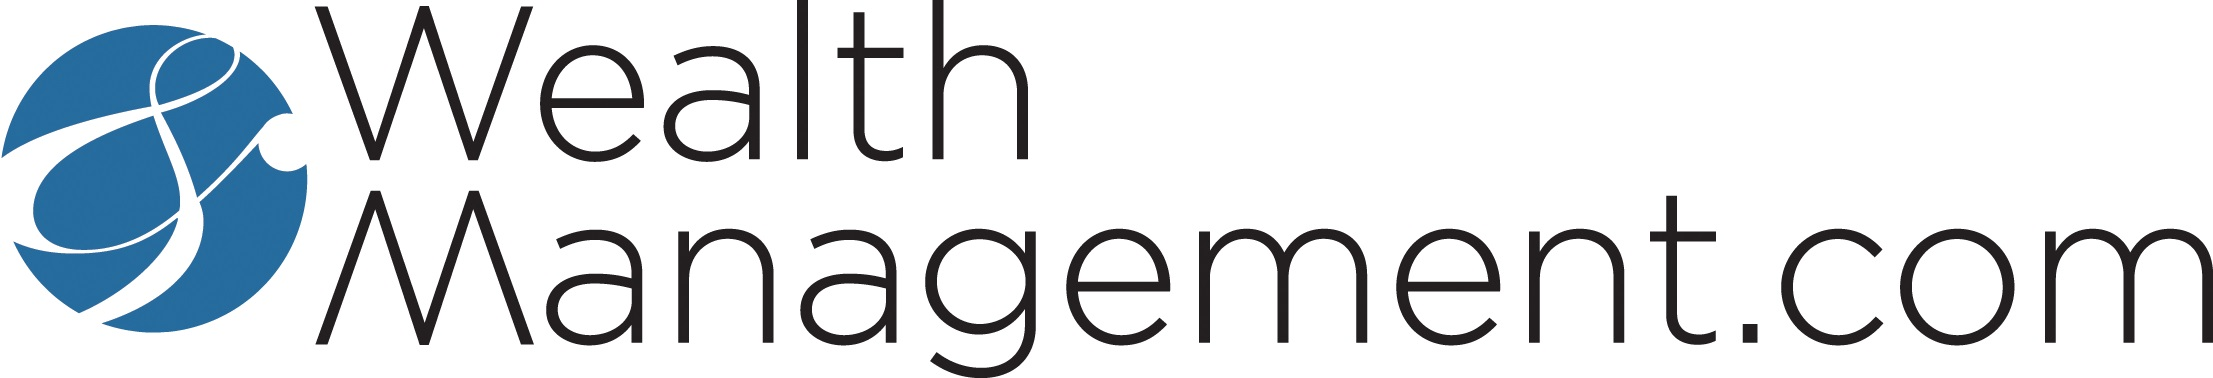 WealthManagement.com logo